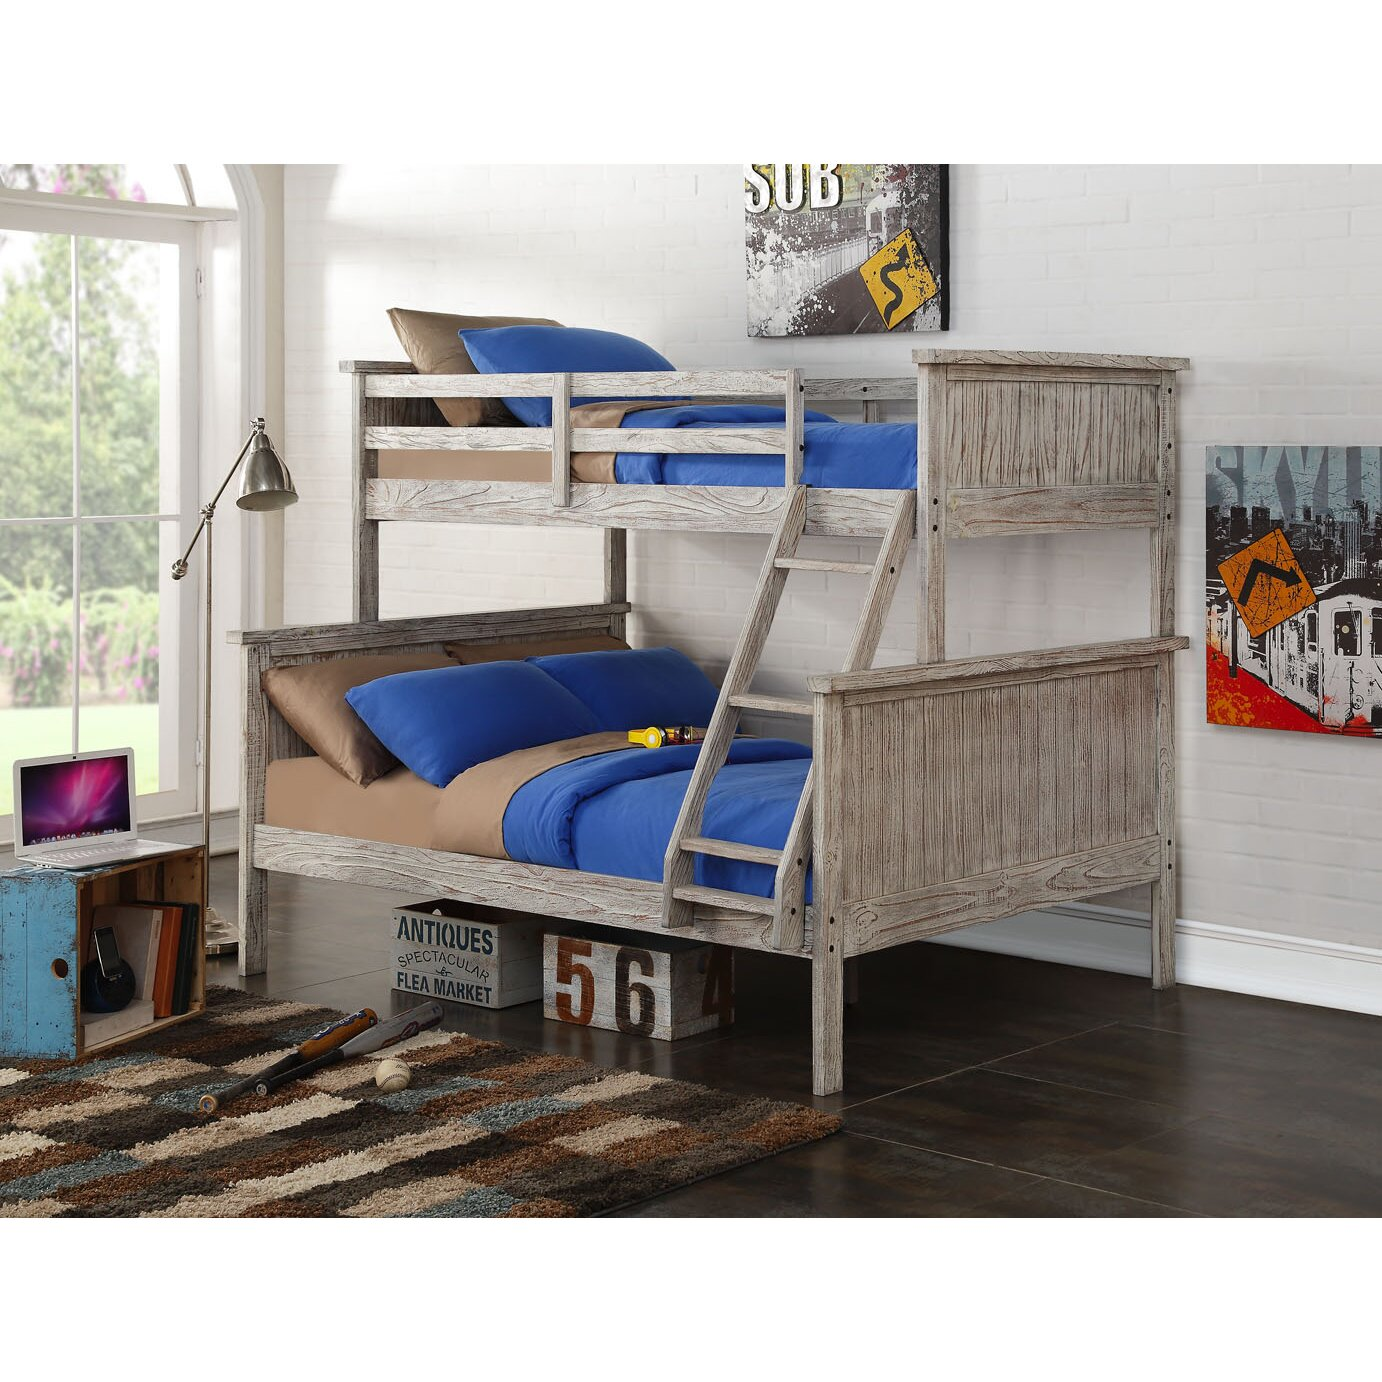 Donco Kids Twin over Full Bunk Bed Wayfair : Twin Over Full Panel Bunk Bed with Distressed Driftwood Finish 004TFD from www.wayfair.com size 1382 x 1382 jpeg 423kB